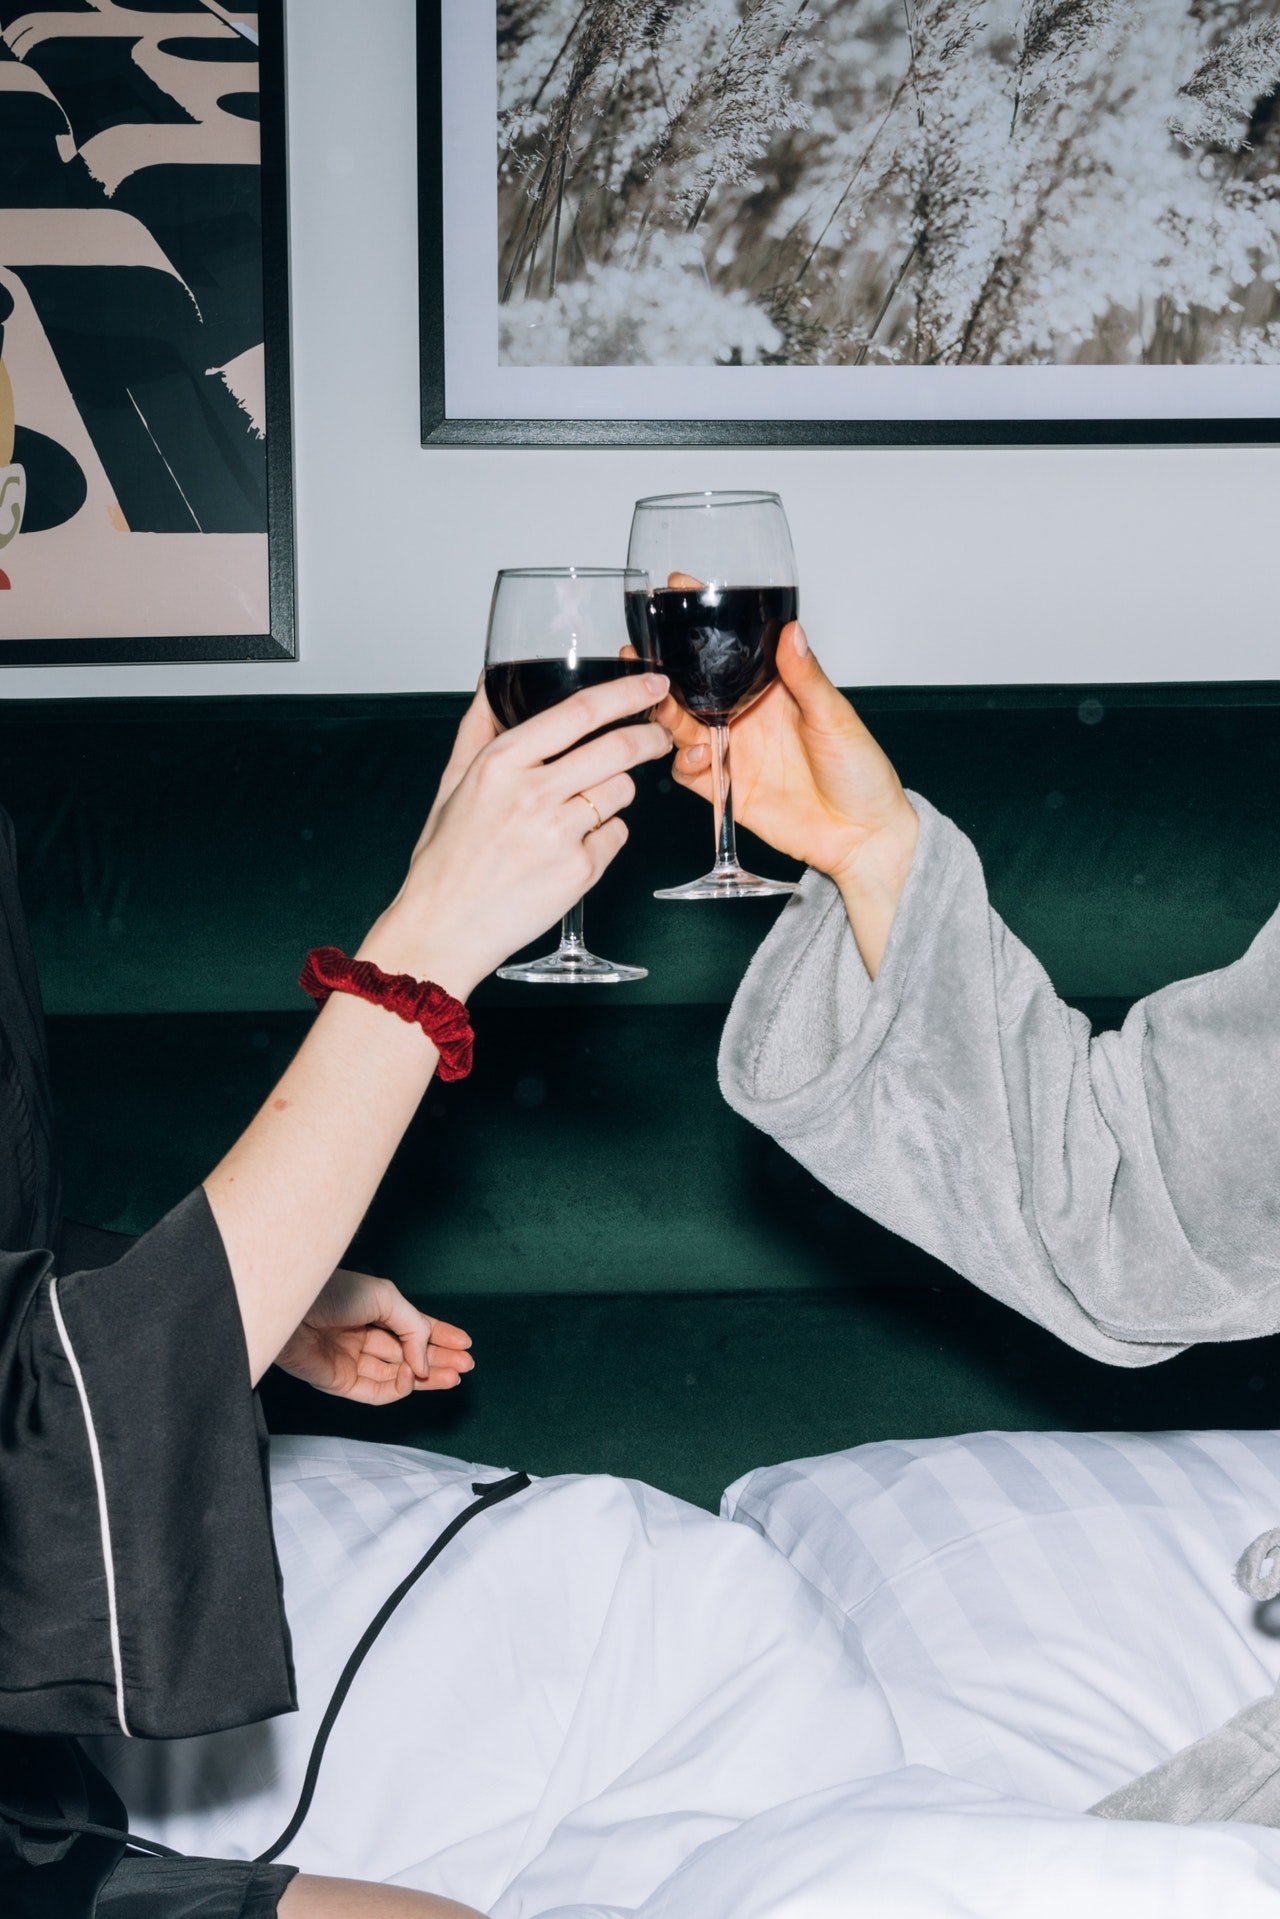 Phoebe came over with wine, and they had some fun. | Source: Pexels